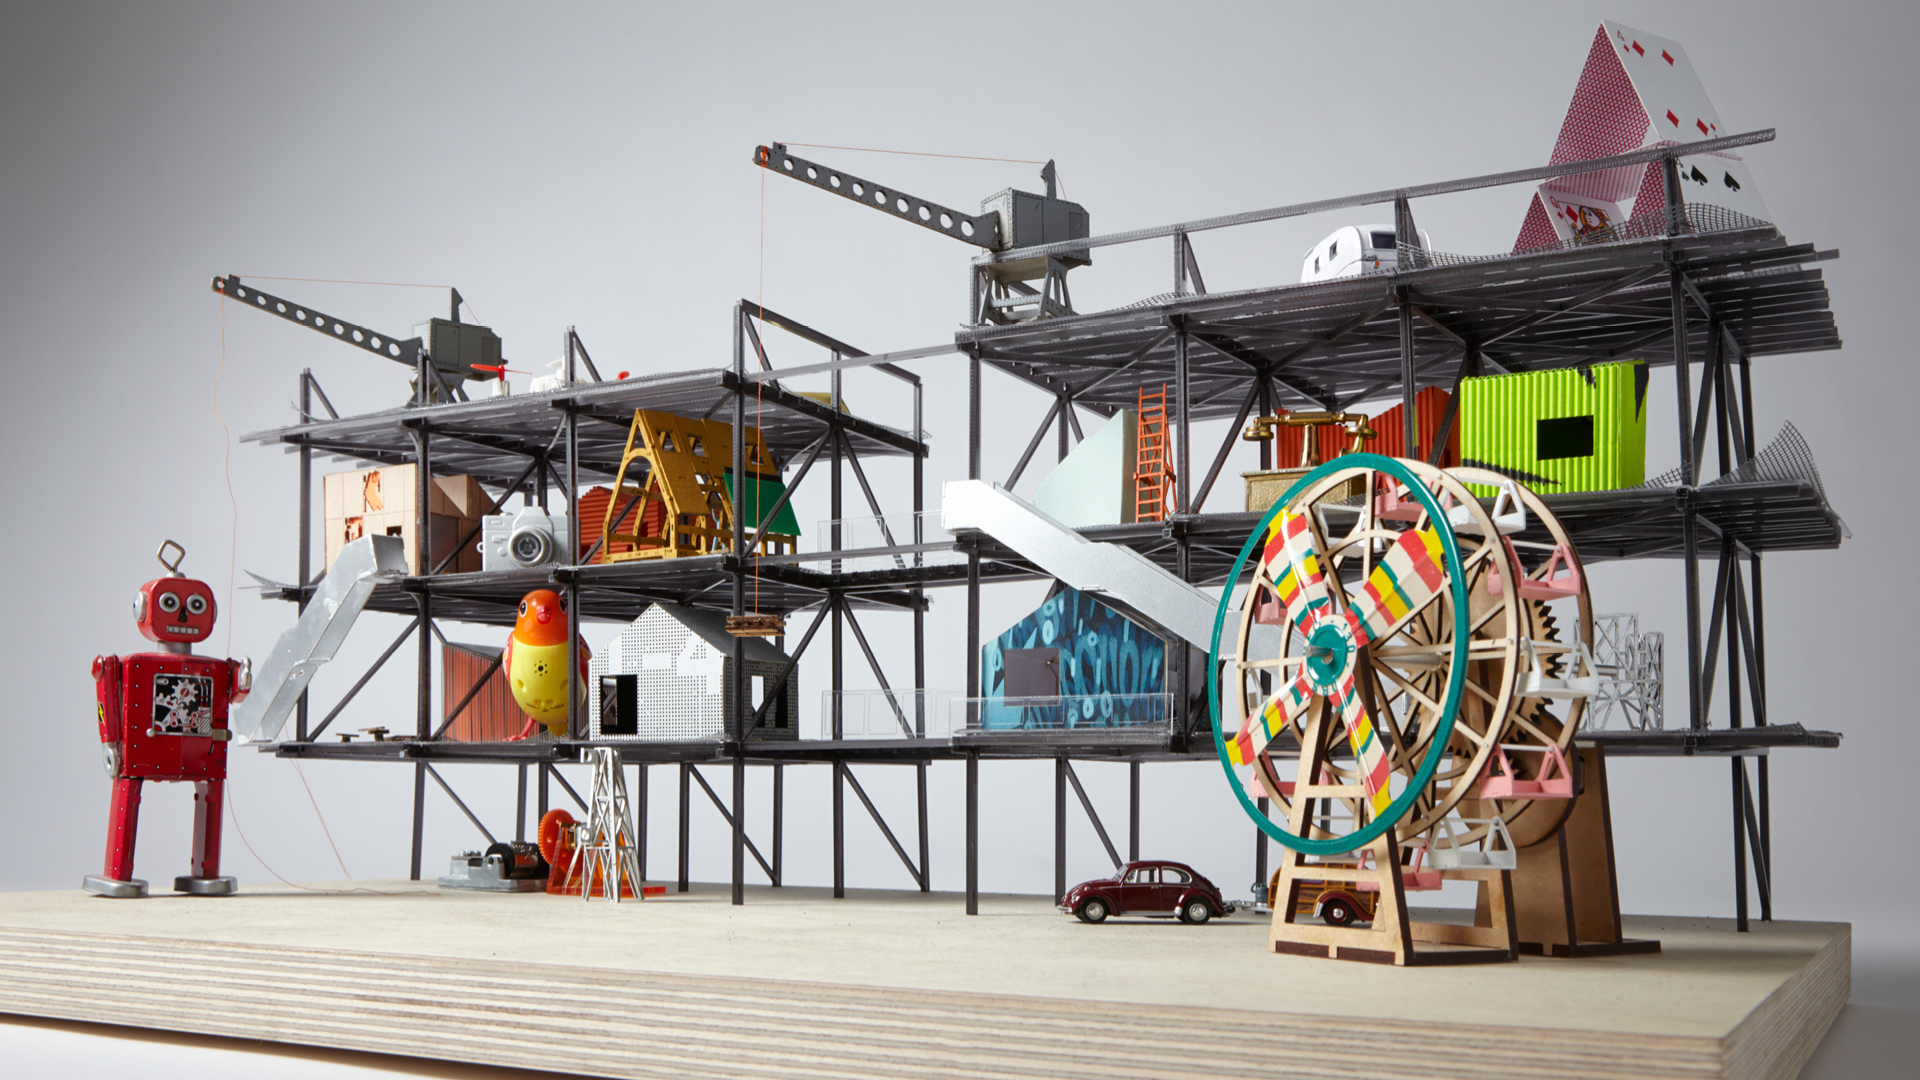 Model of the Gantry area for Here East project in London | Here East London | Hawkins\Brown | STIRworld